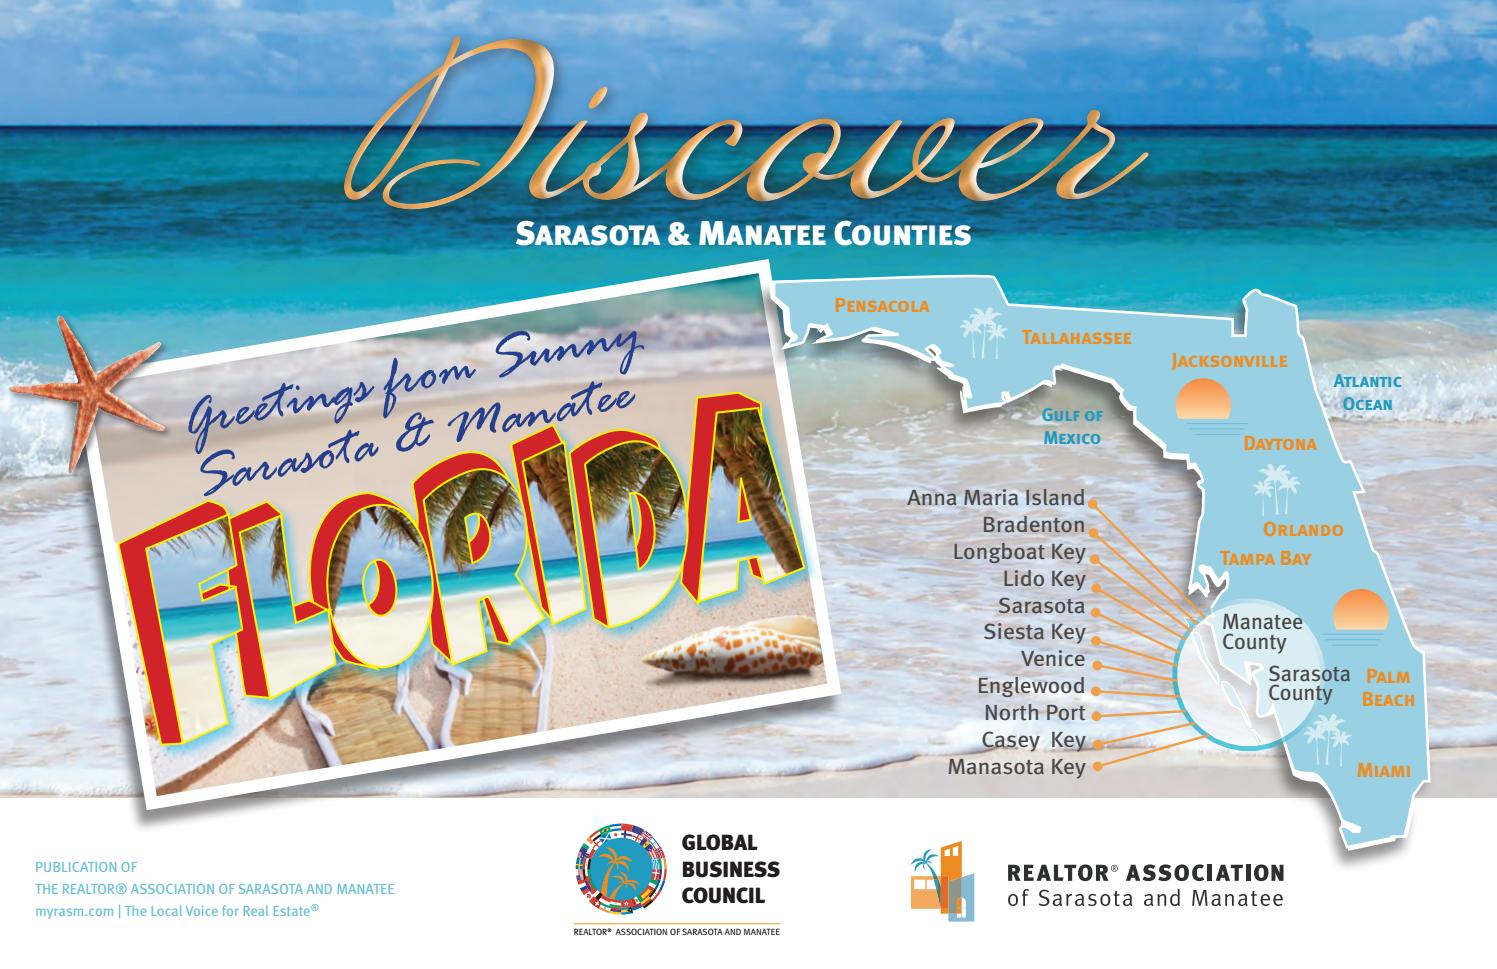 Discover Sarasota and Manatee Counties by REALTOR ...